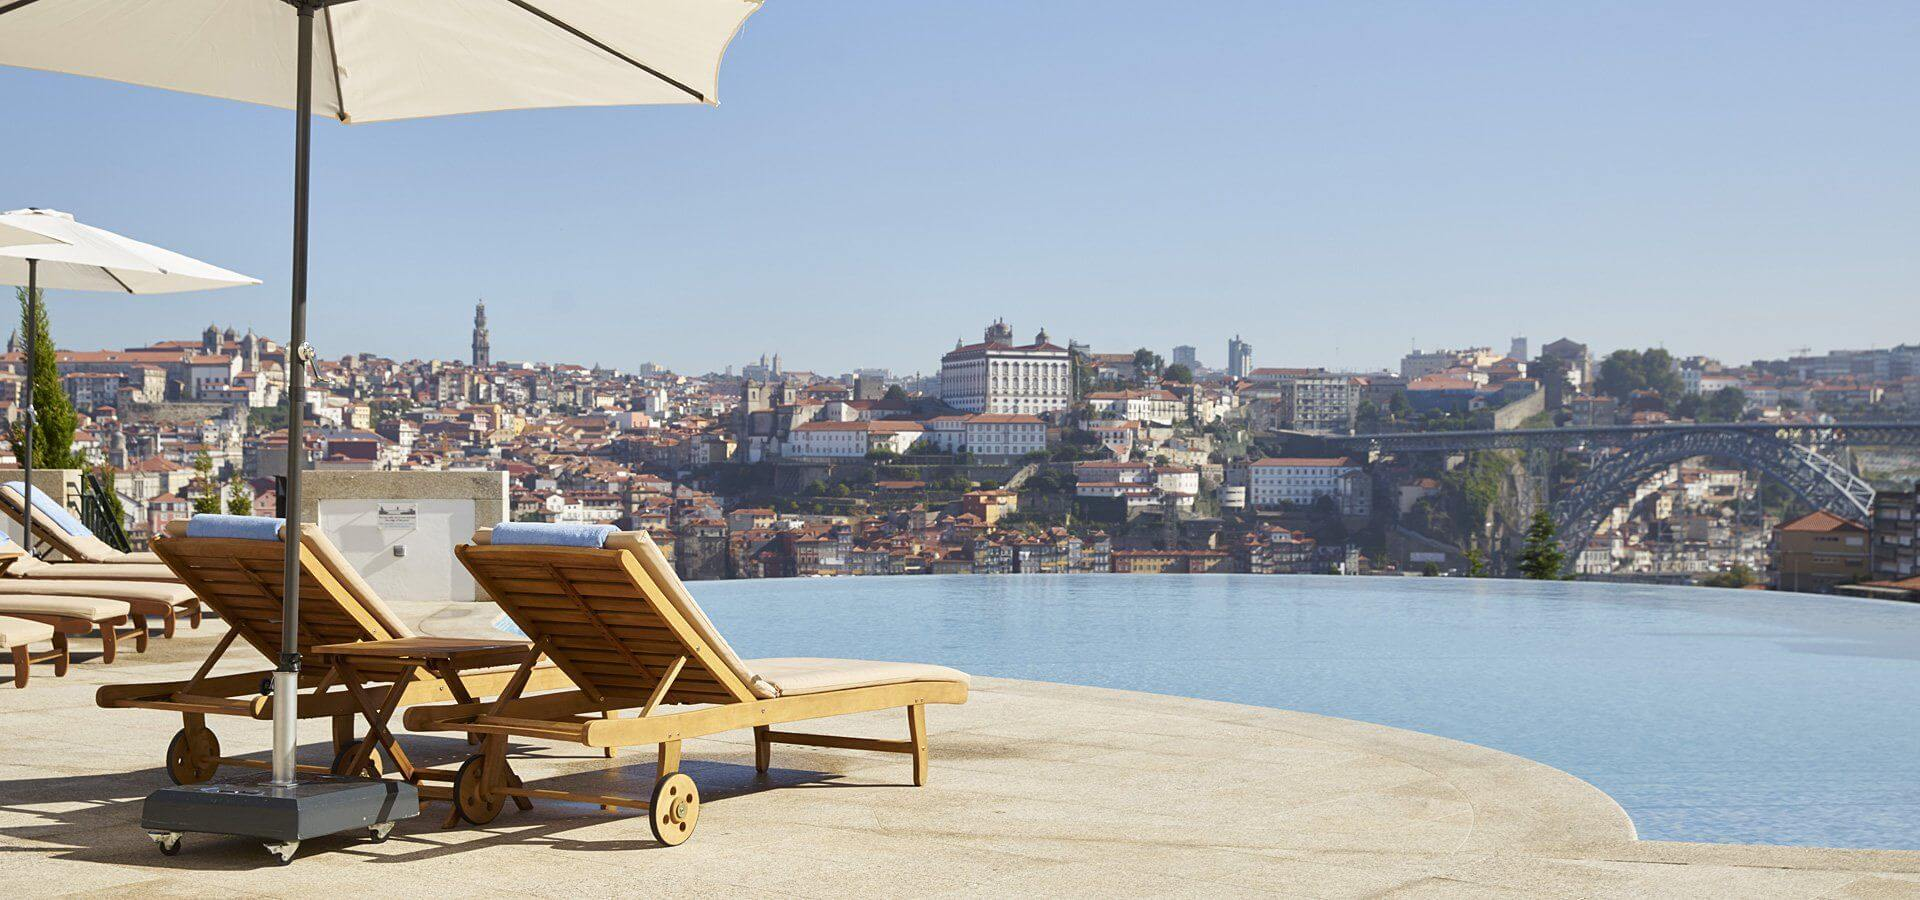 Summer Holiday in Porto